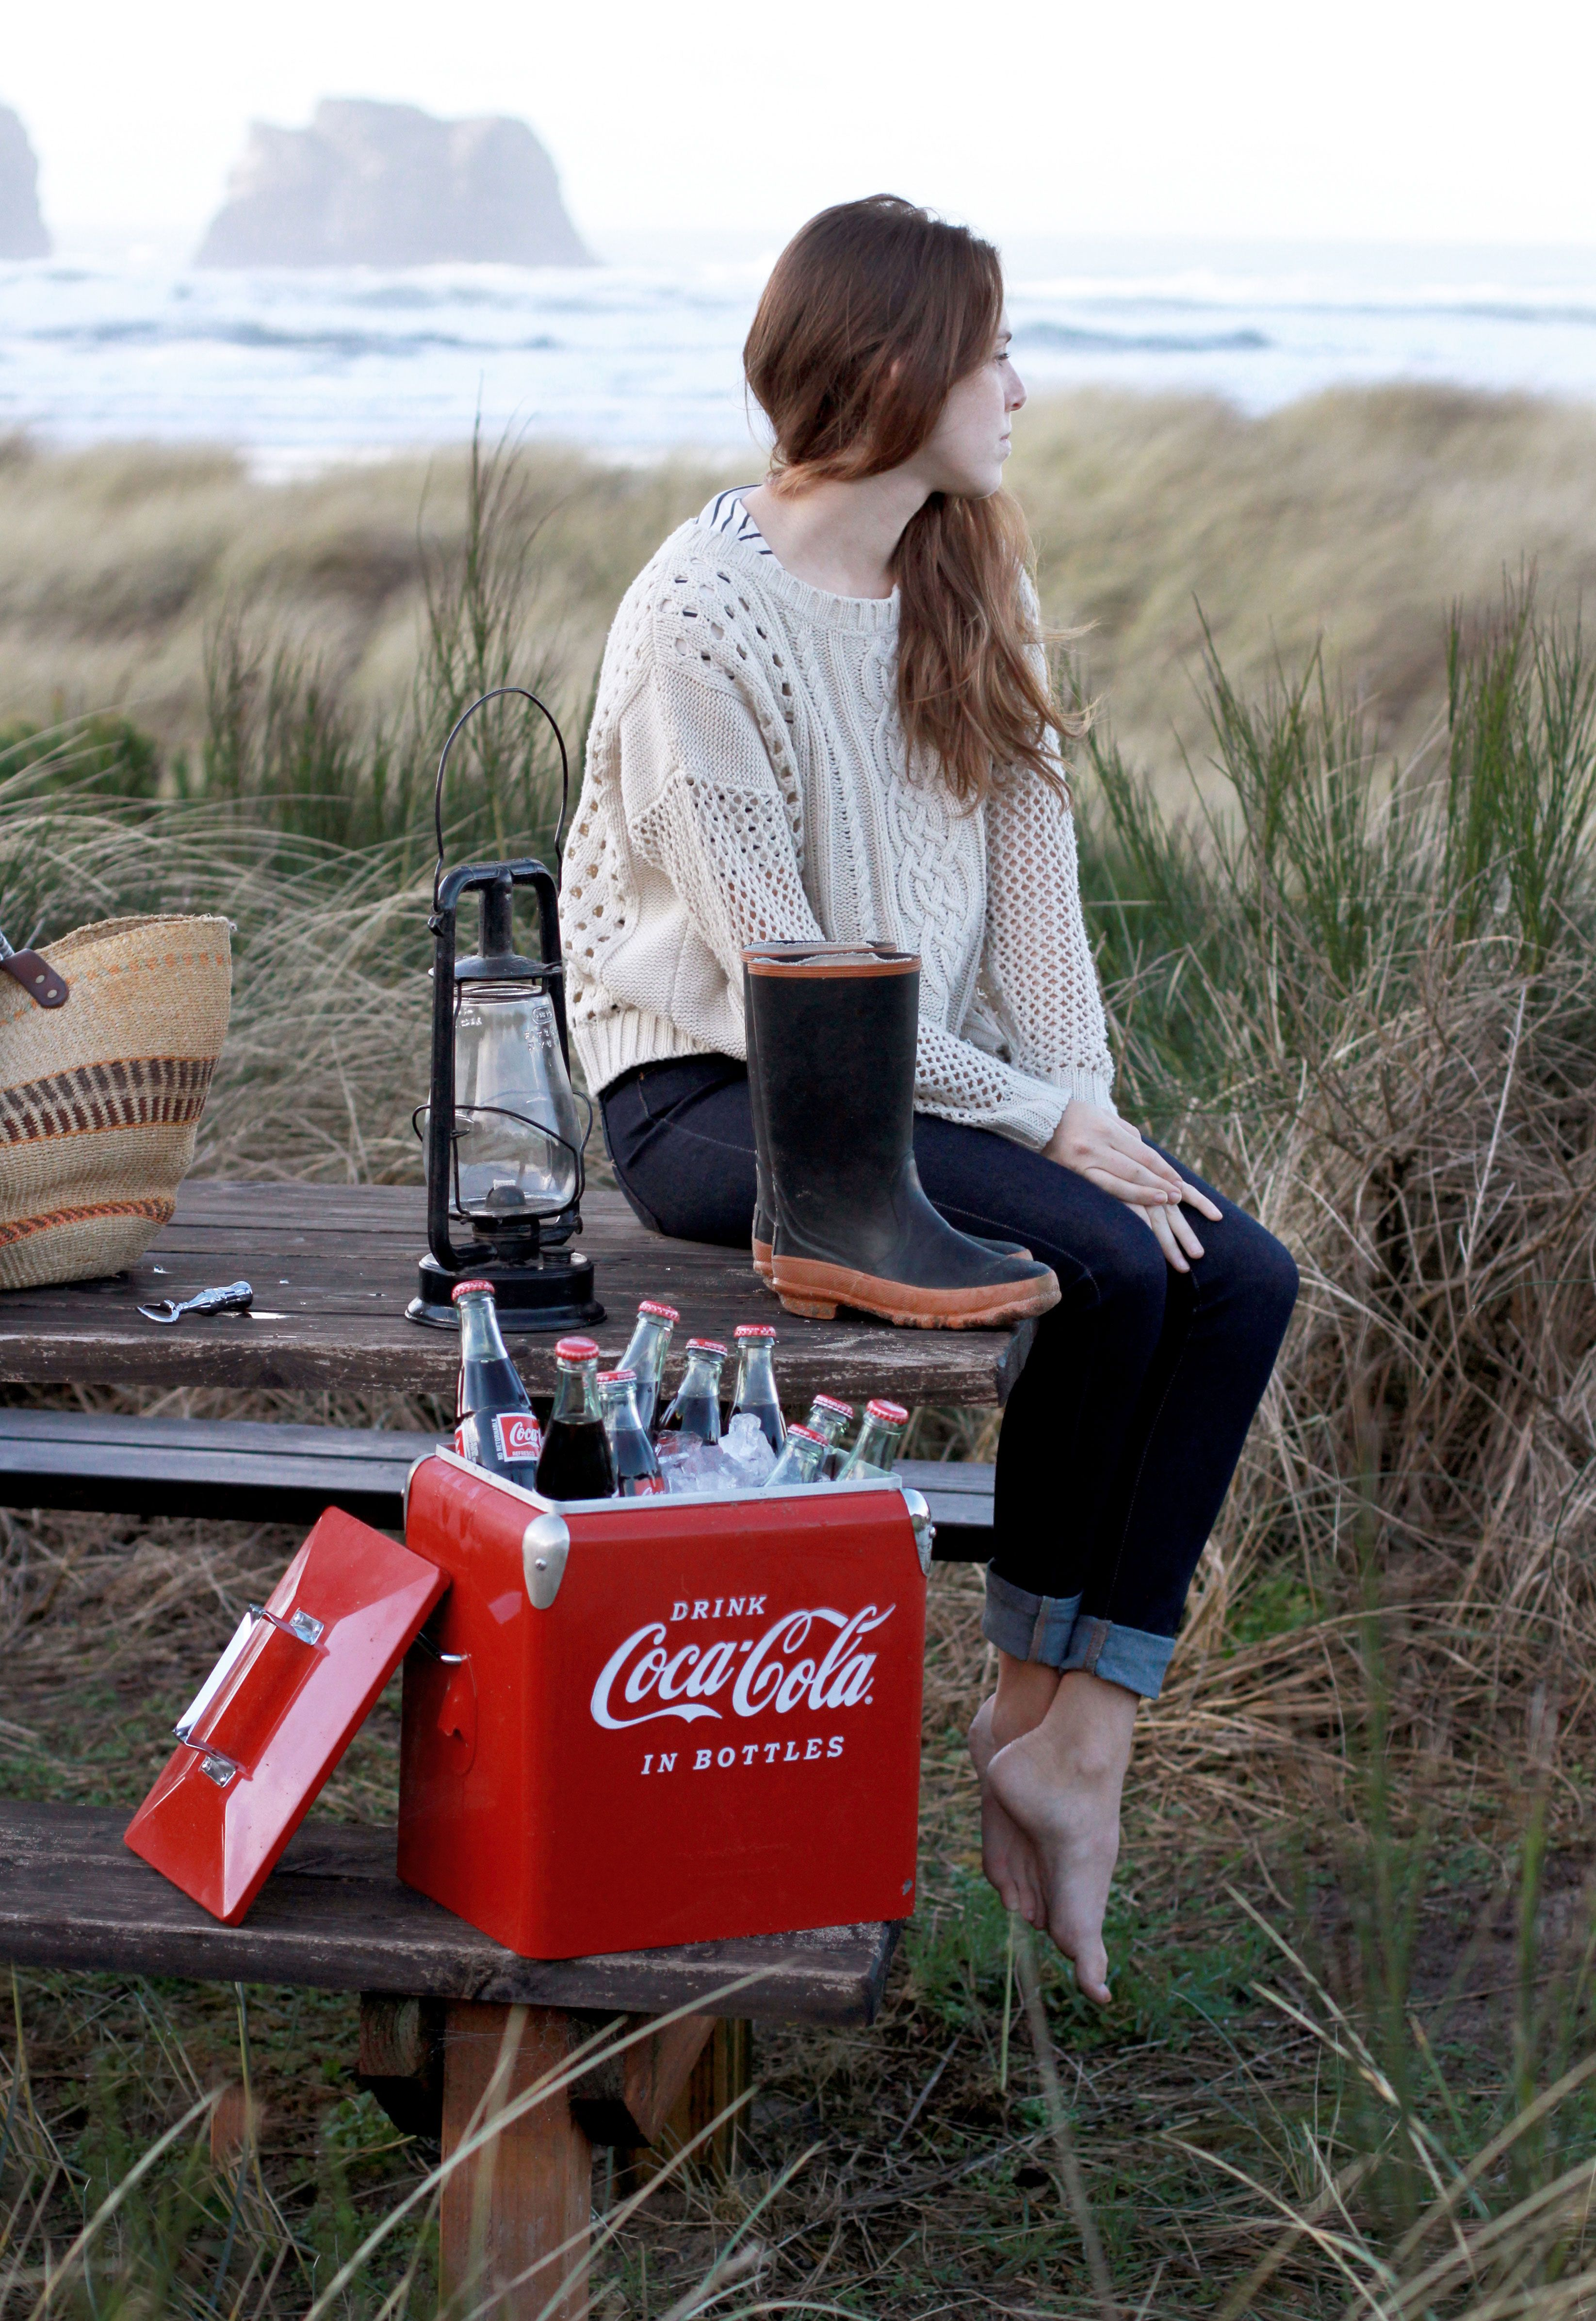 Laid back beach style; a cozy sweater, jeans and rubber boots. #cokestyle Thanks to our friends at Coca-Cola!